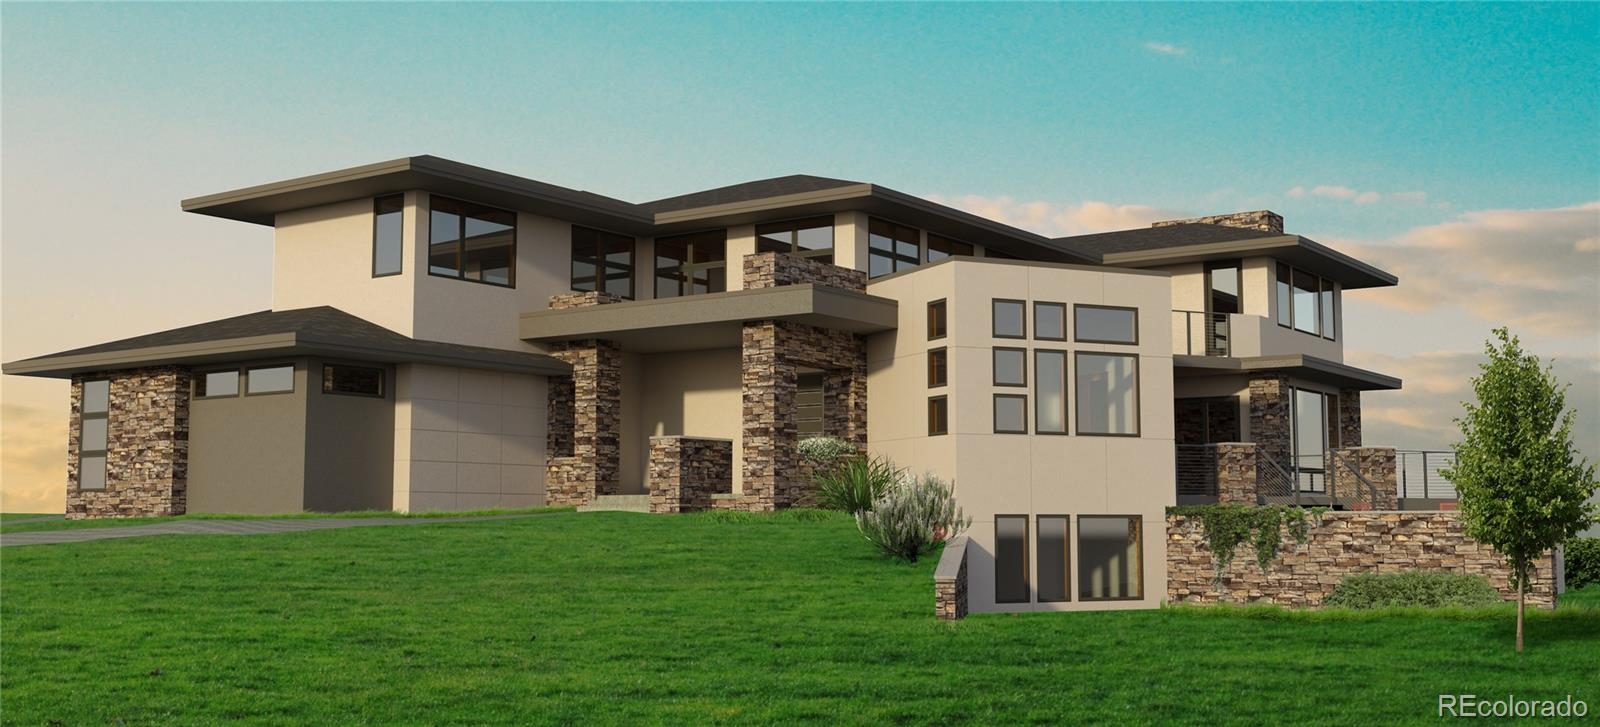 New Construction Homes | Thornton, CO